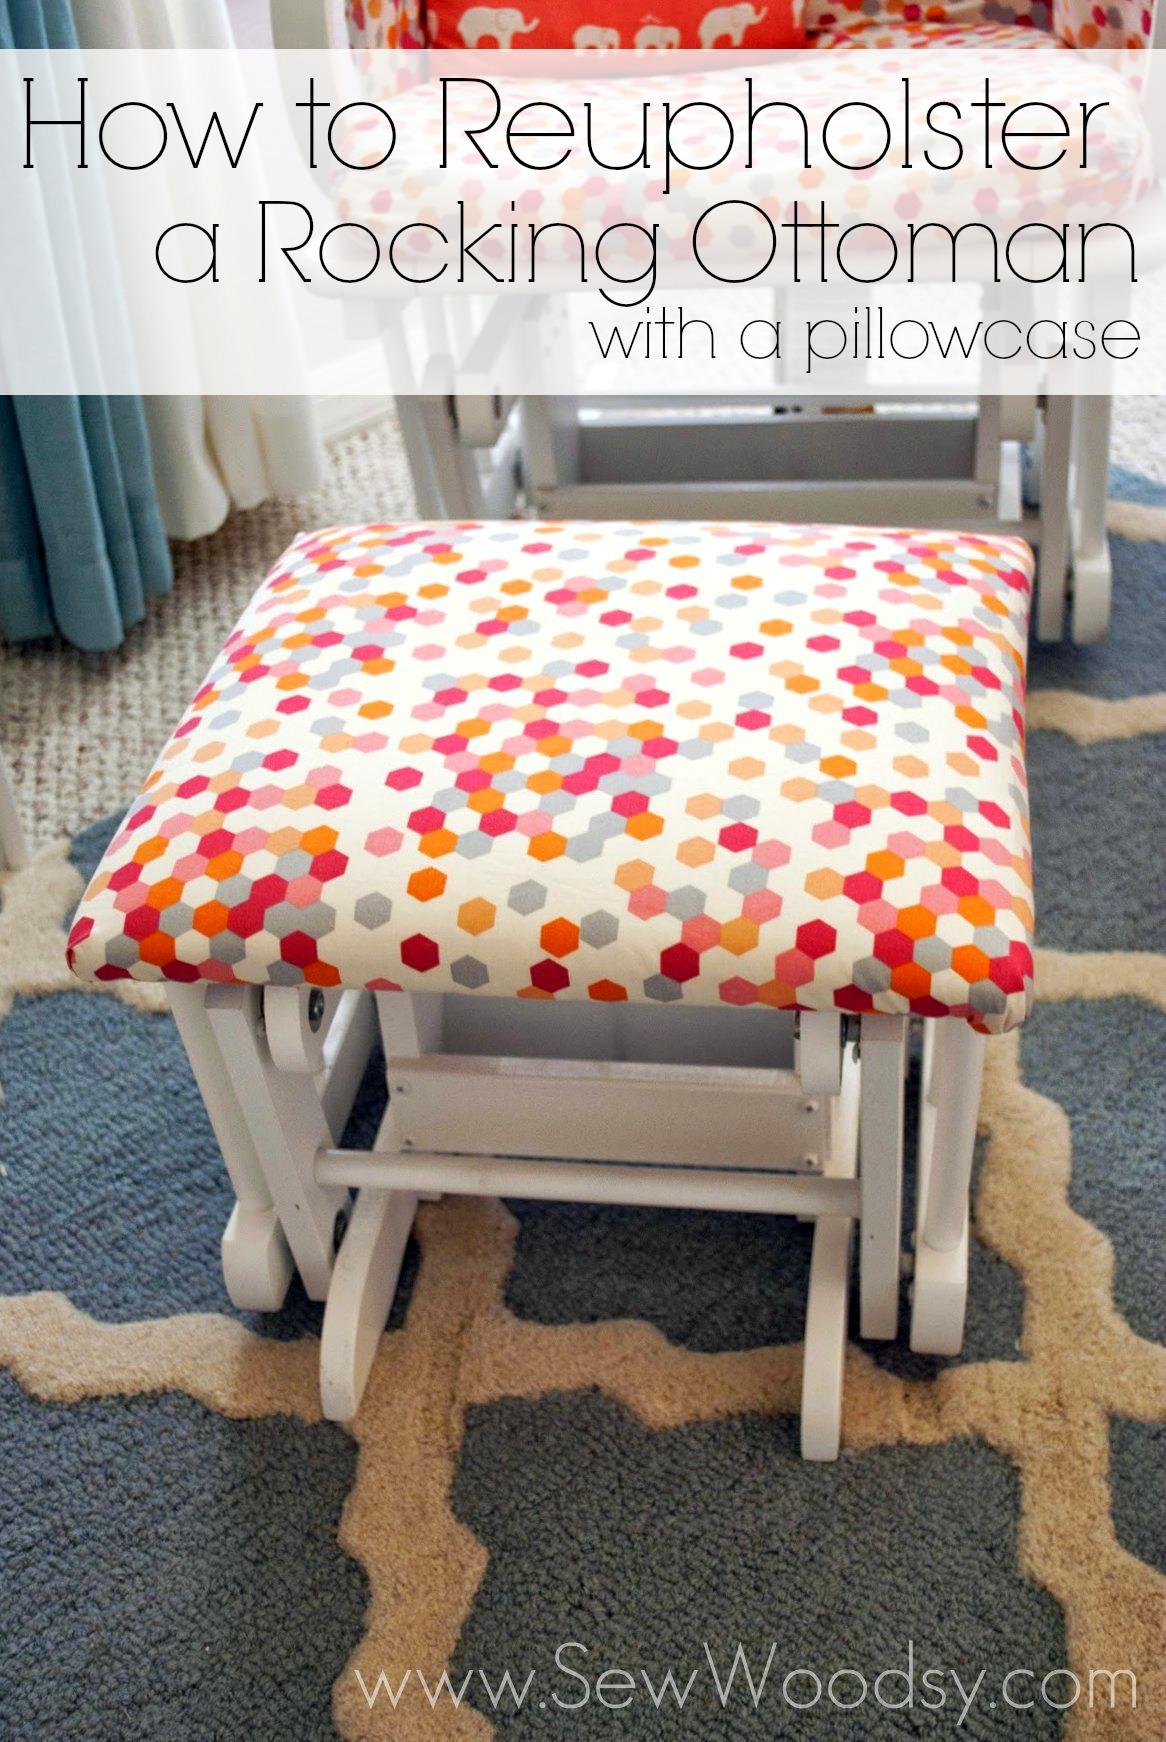 How to Reupholster a Rocking Ottoman with a Pillowcase from SewWoodsy.com #nursery #diy #reupholster